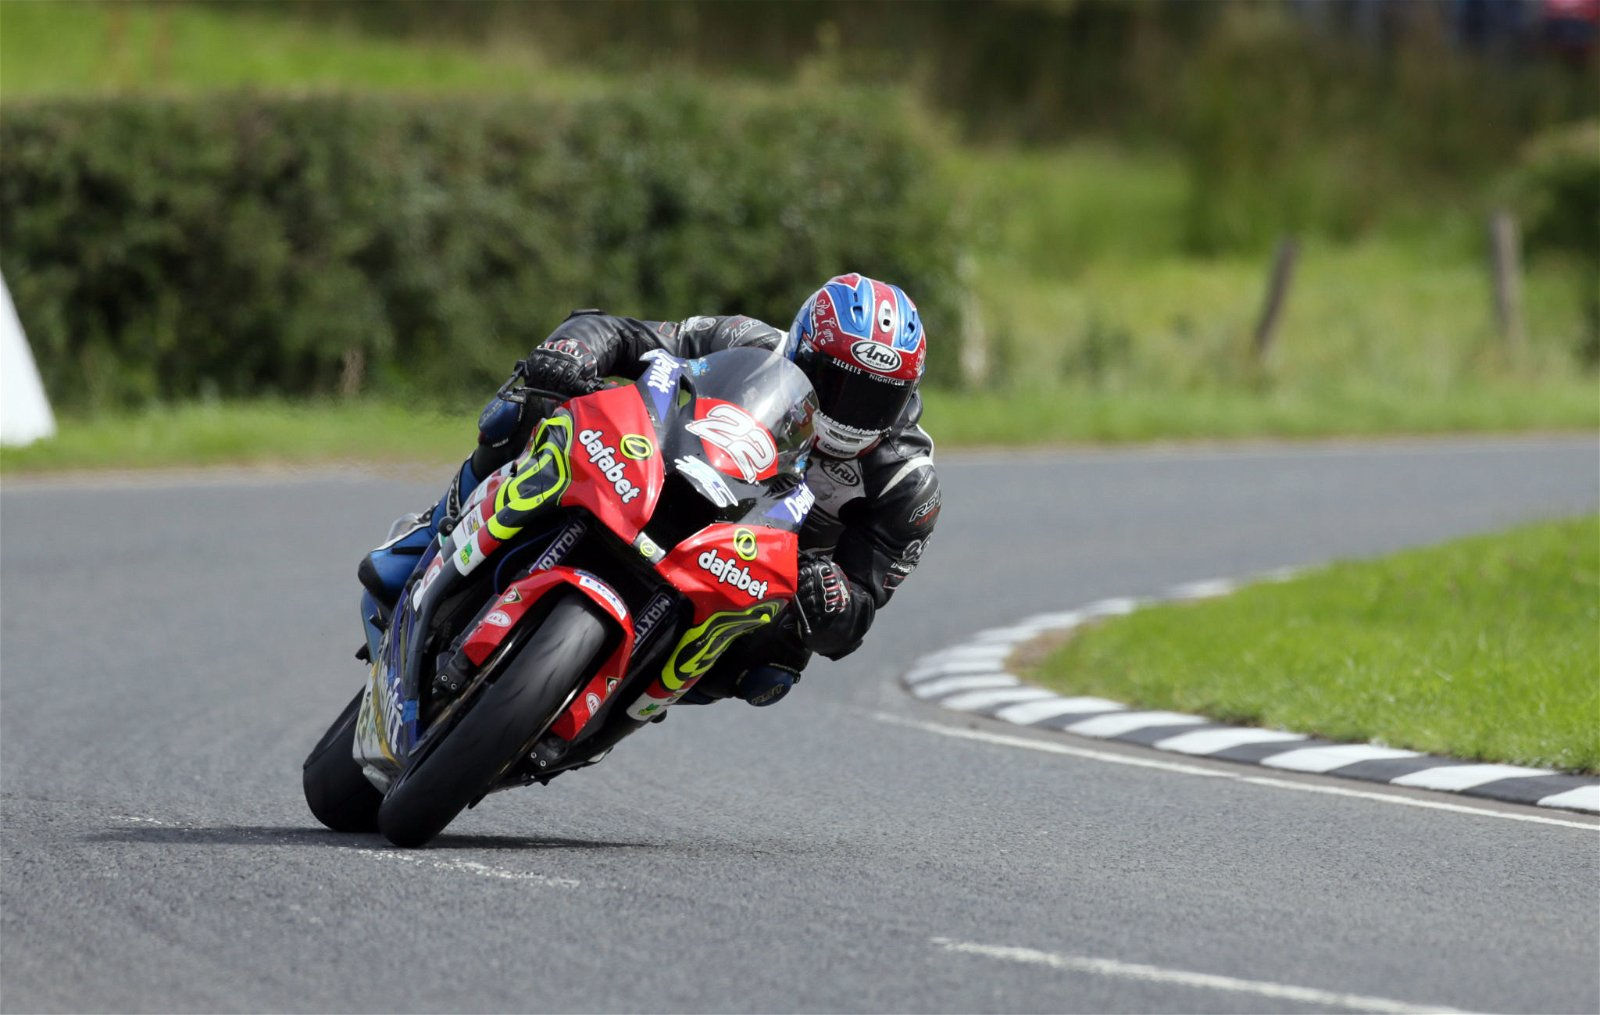 Jordan took full advantage while riding for the Dafabet Devitt Racing team credit Pacemaker Press International